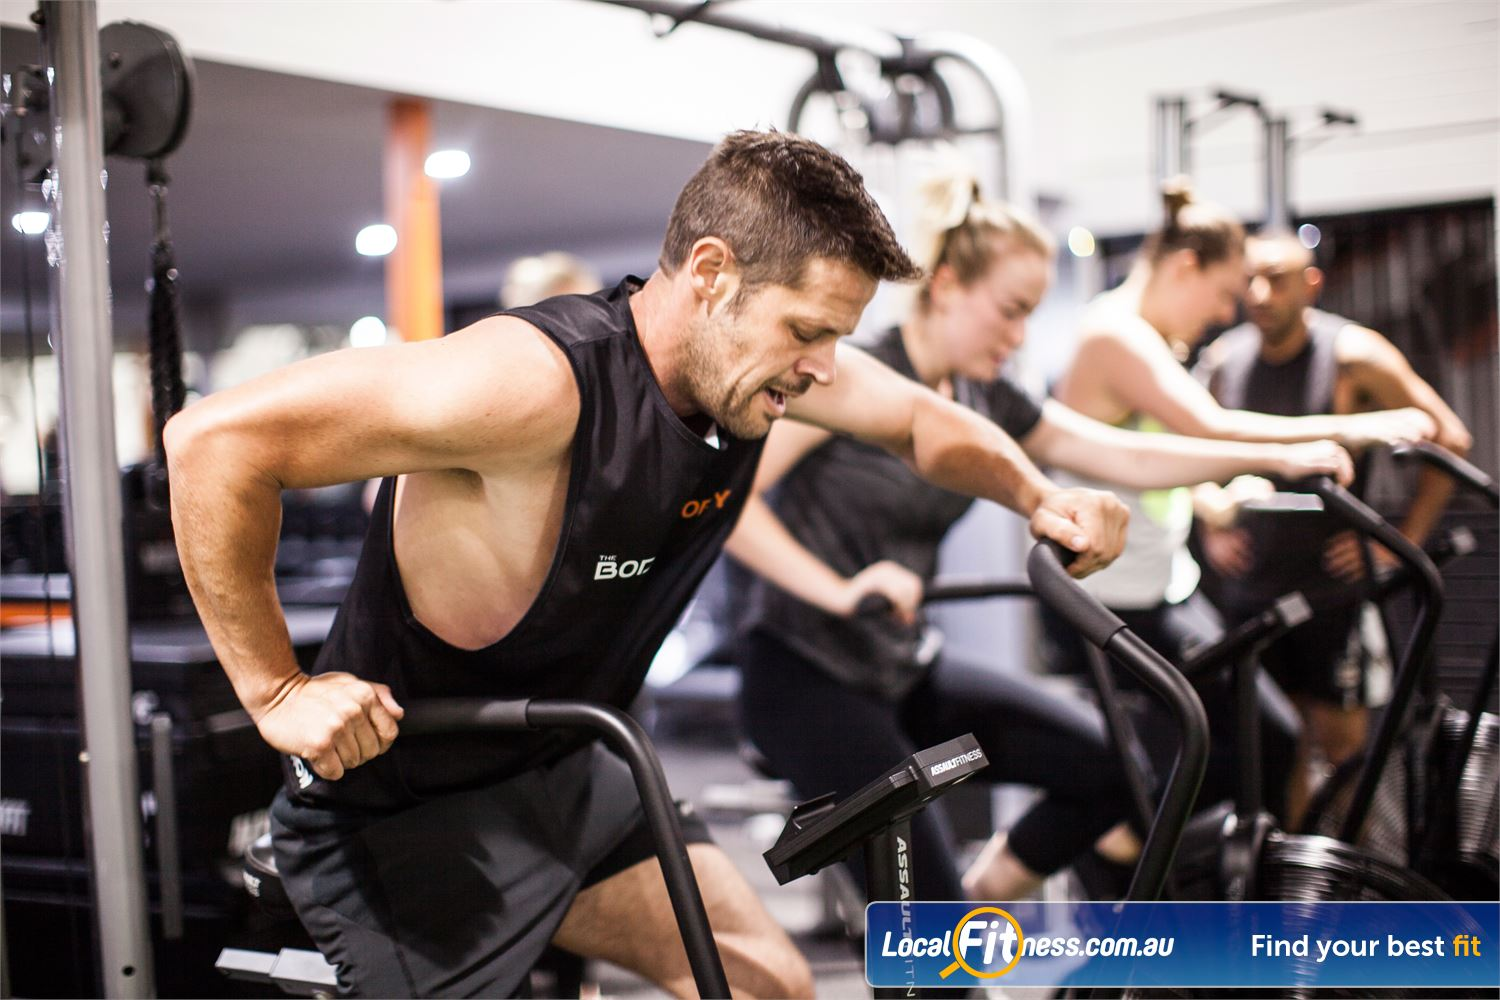 The Body Factory Caringbah Welcome to The Body Factory gym in Caringbah.